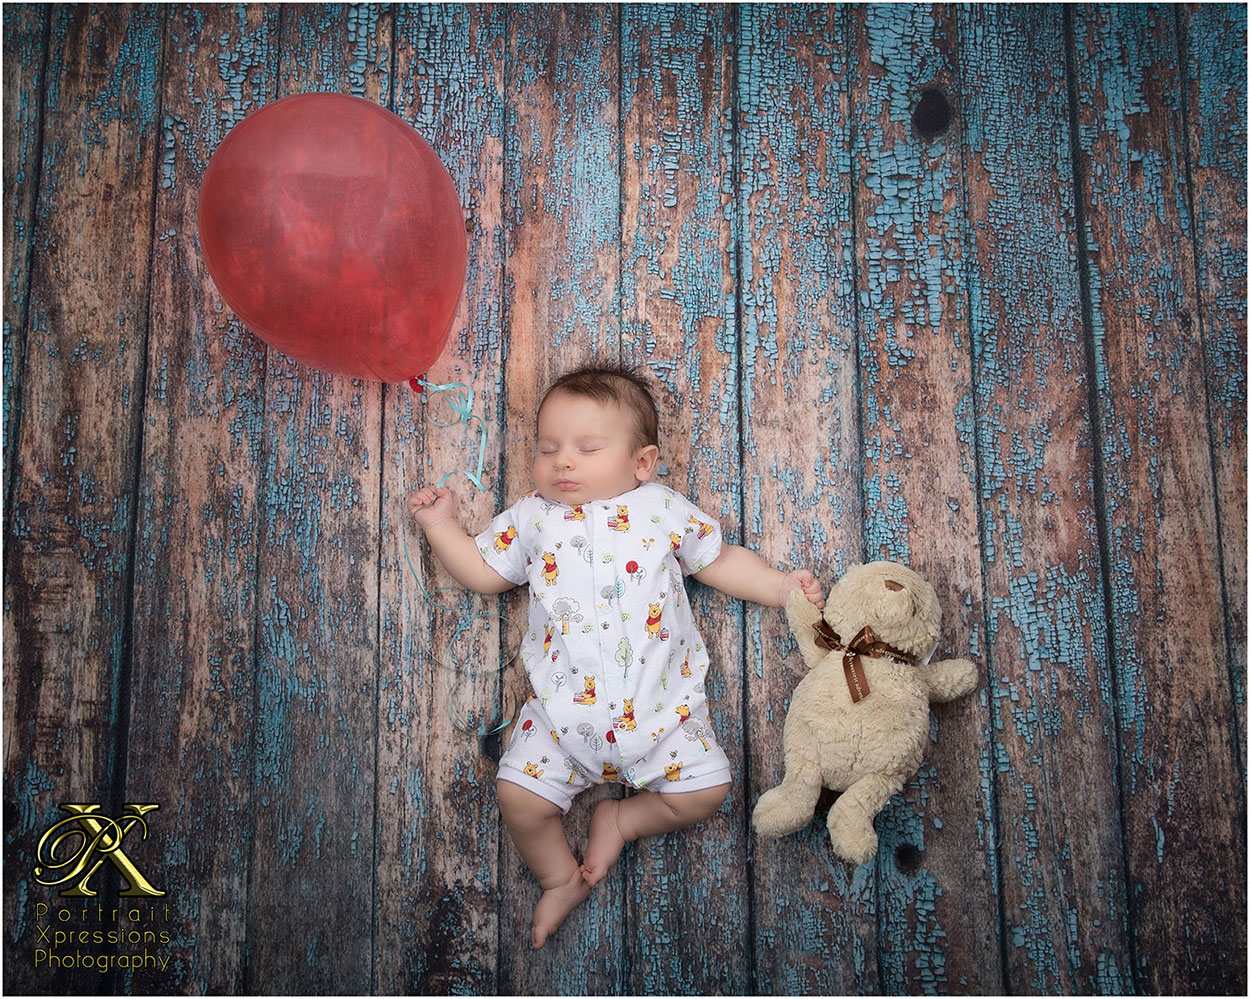 baby with red balloon and teddy bear